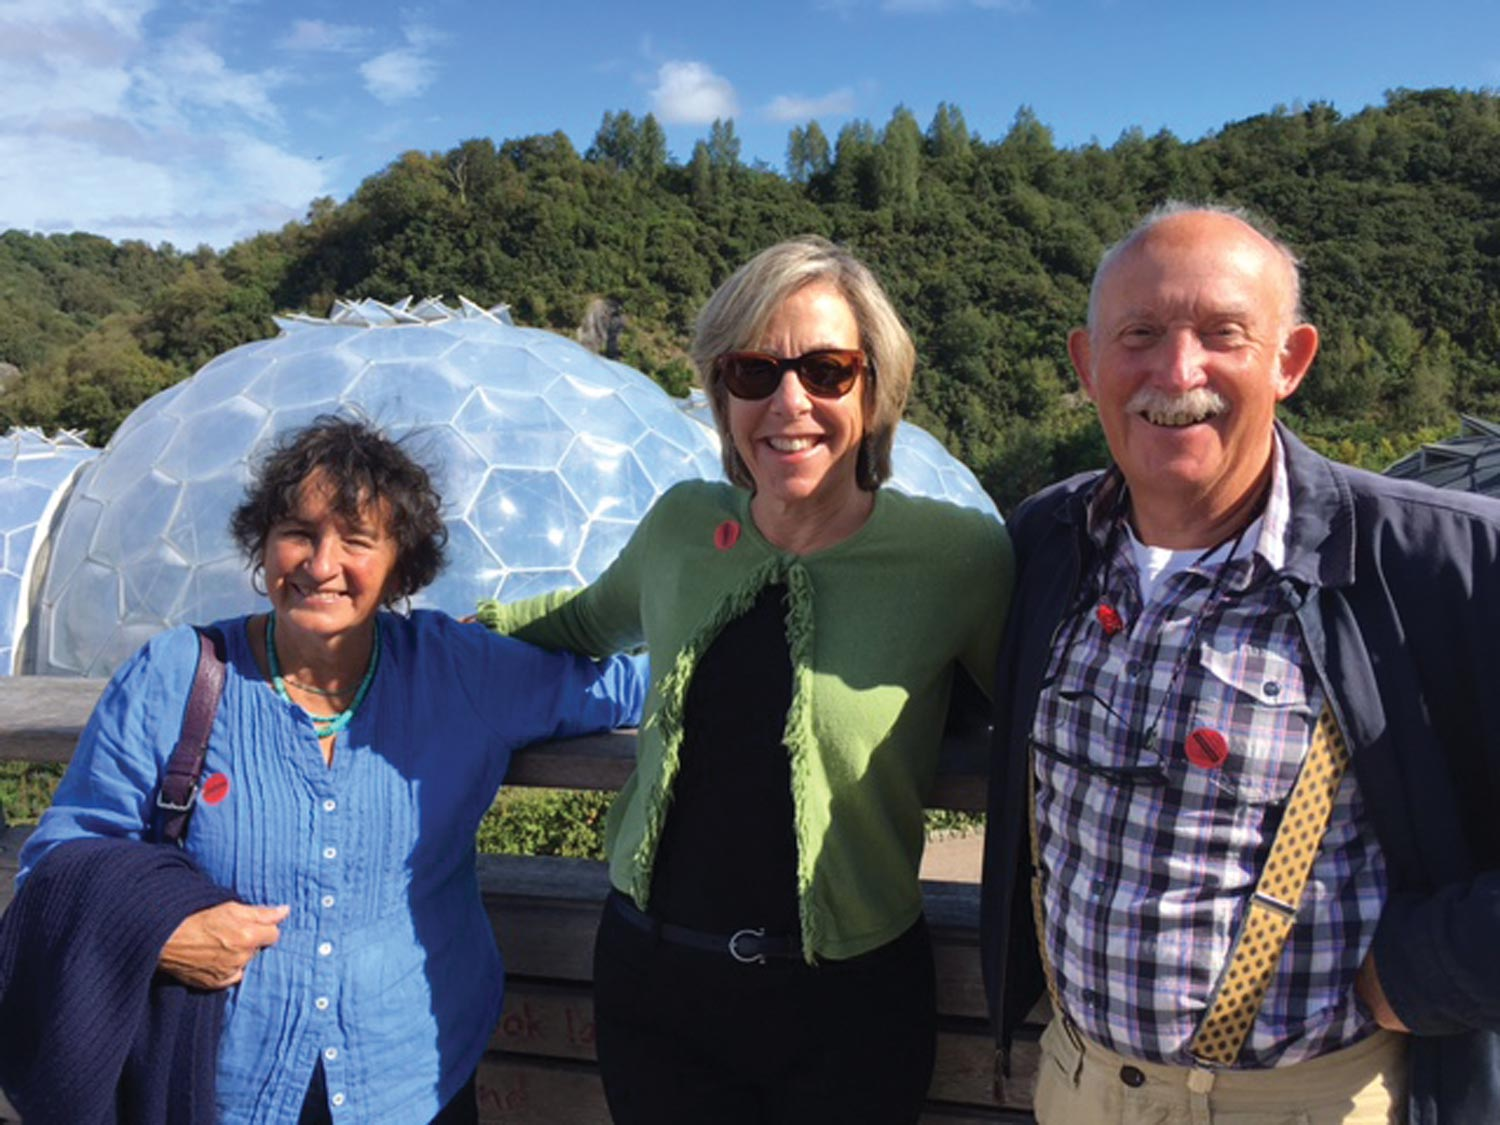 Wife Ann Foster, Artistic Director Kristin Poole, and Tony Foster visiting the Eden Project, a global garden, in Cornwall, 2016.    Photo by Paul Salisbury